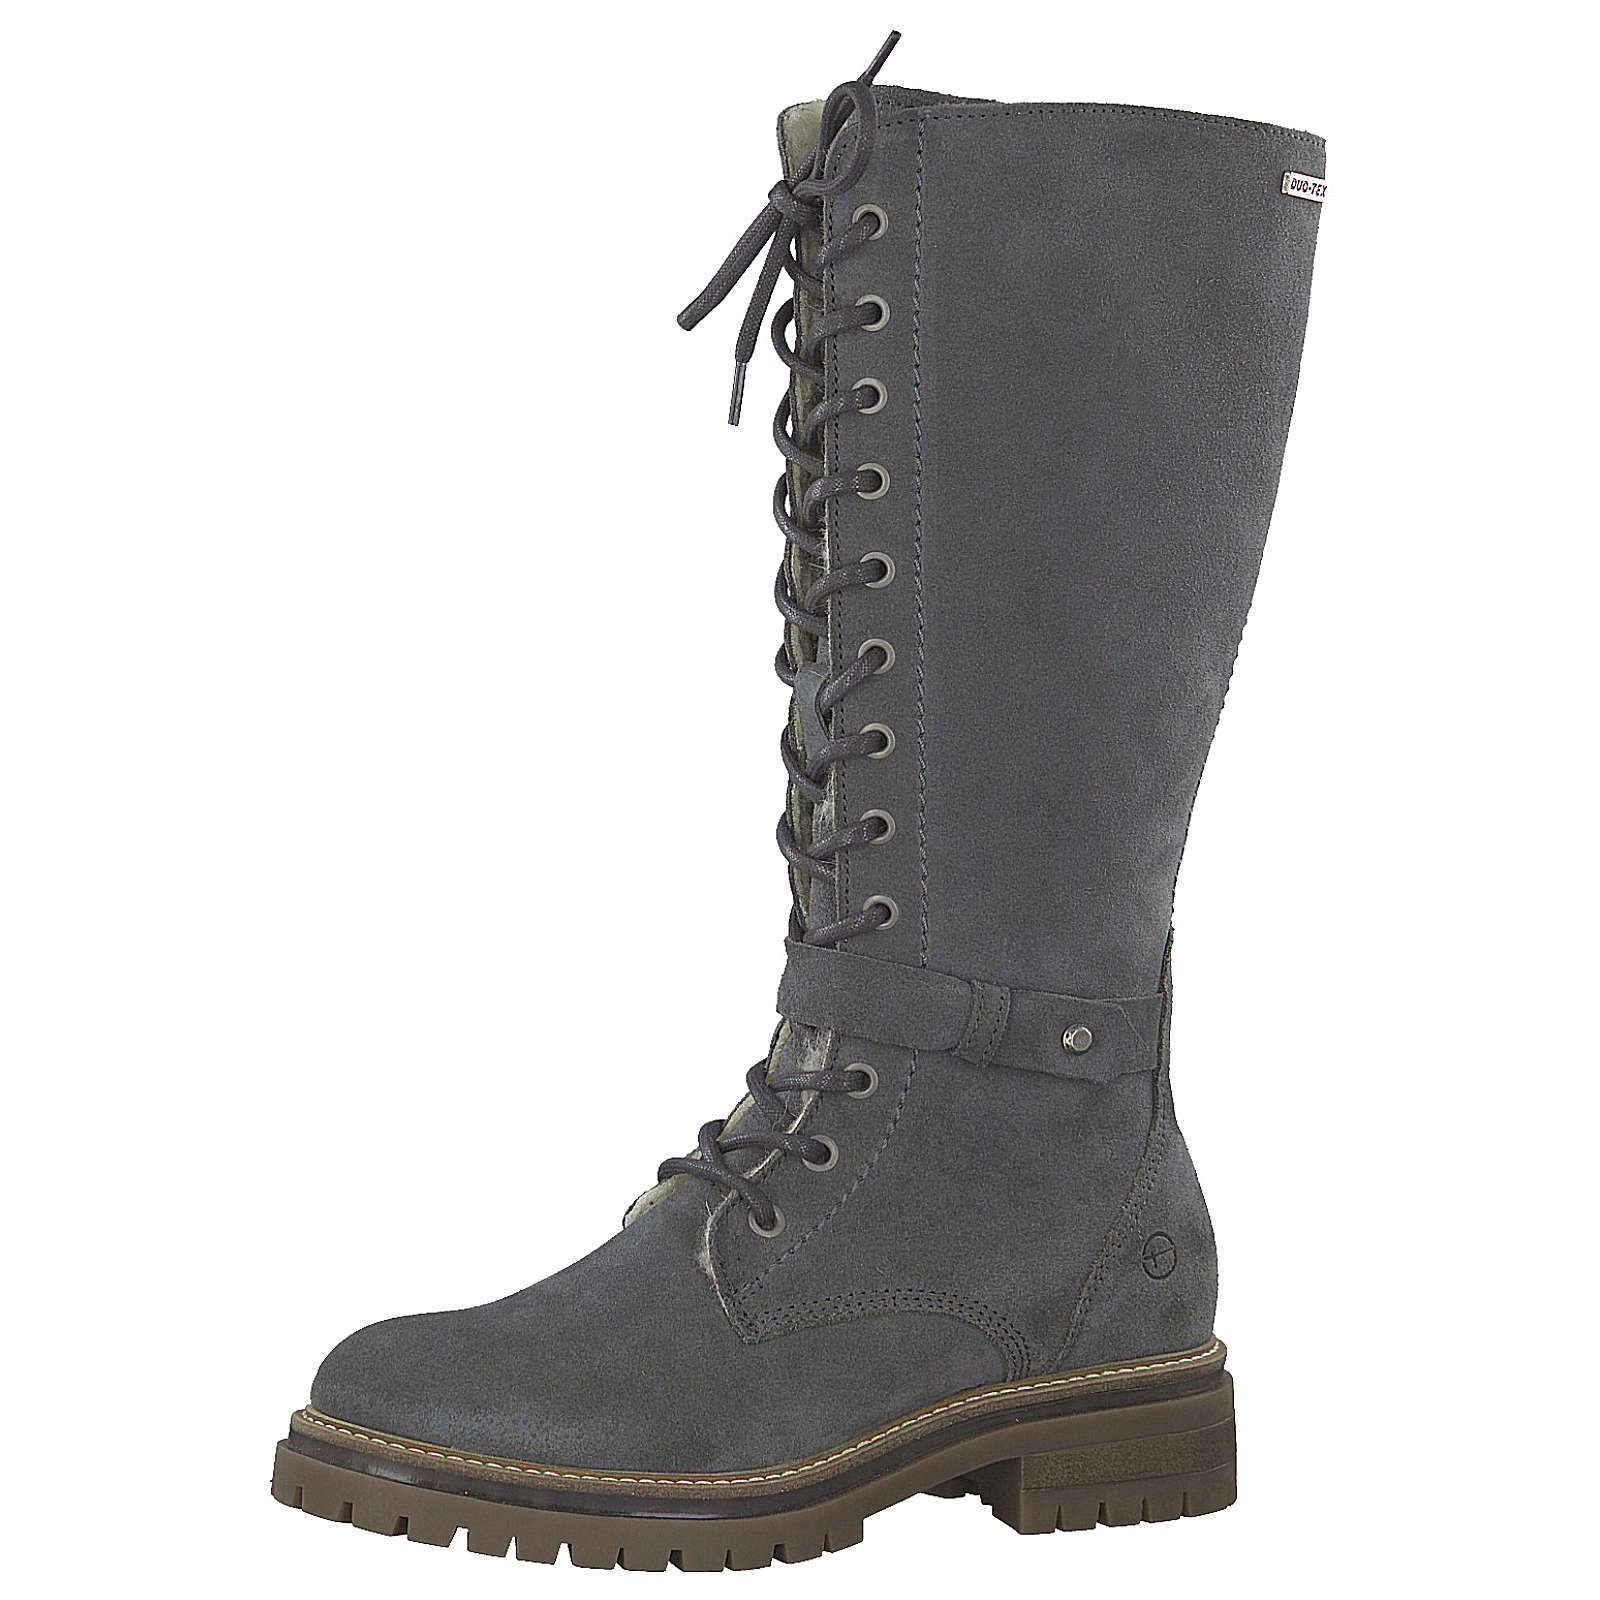 Tamaris Winterstiefel graphit Damen Gr. 38